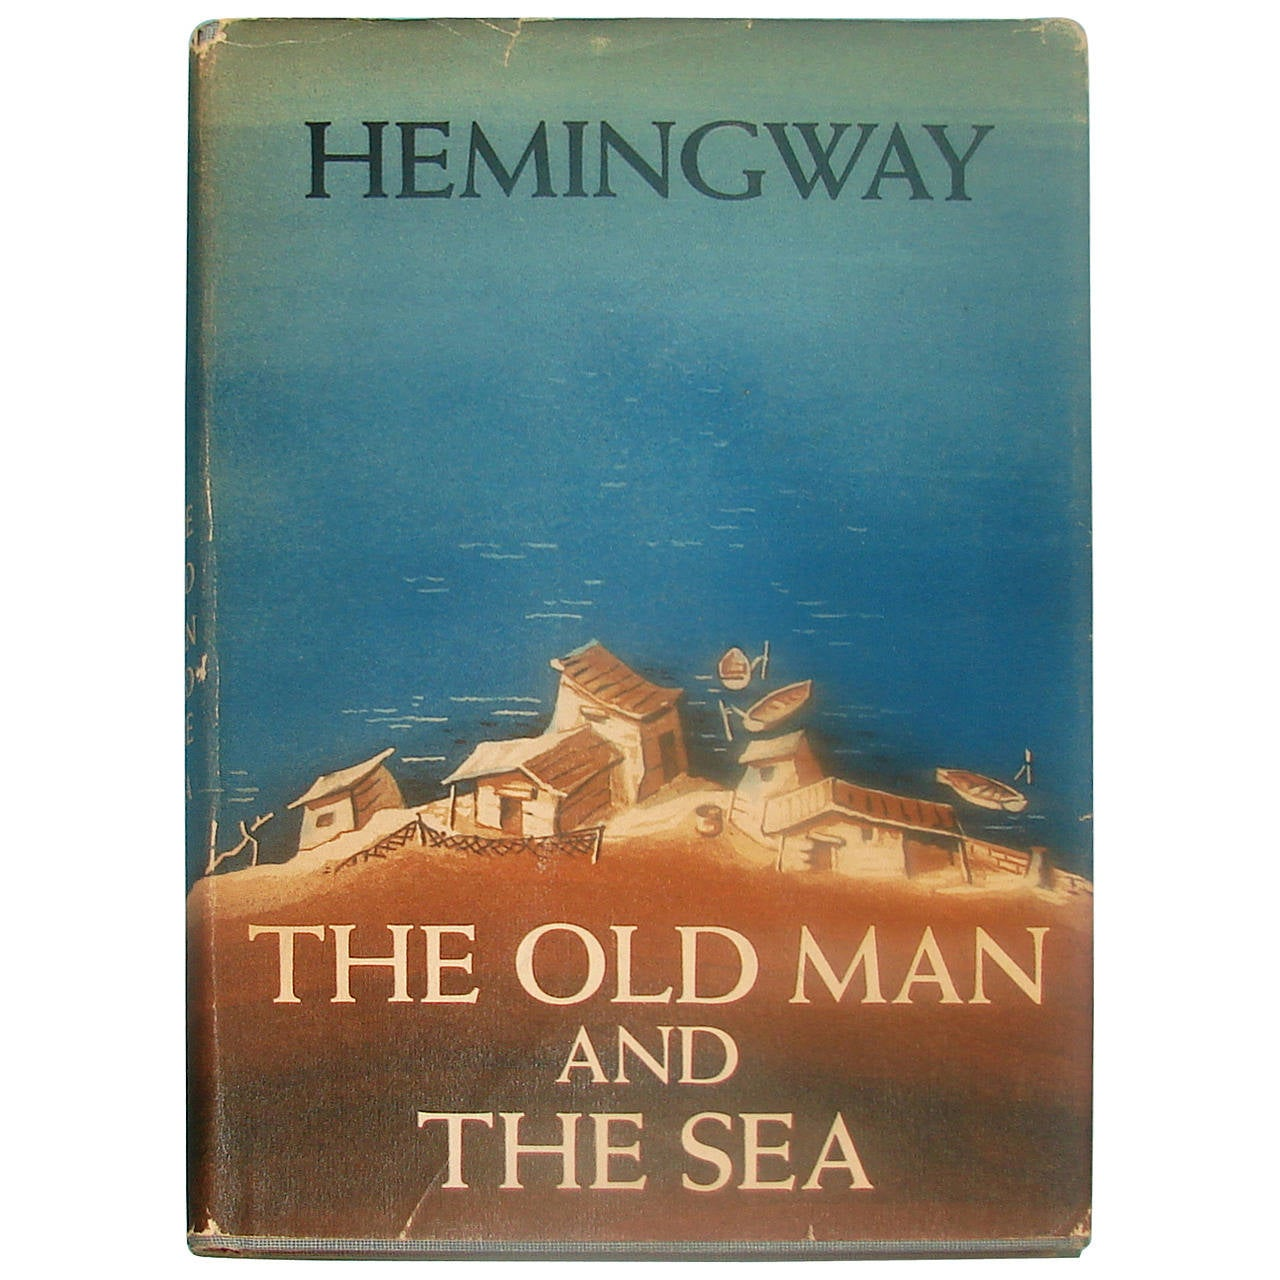 an analysis of the book the old man and the sea by ernest hemingway Literary analysis - hemingway's the old man and the sea.